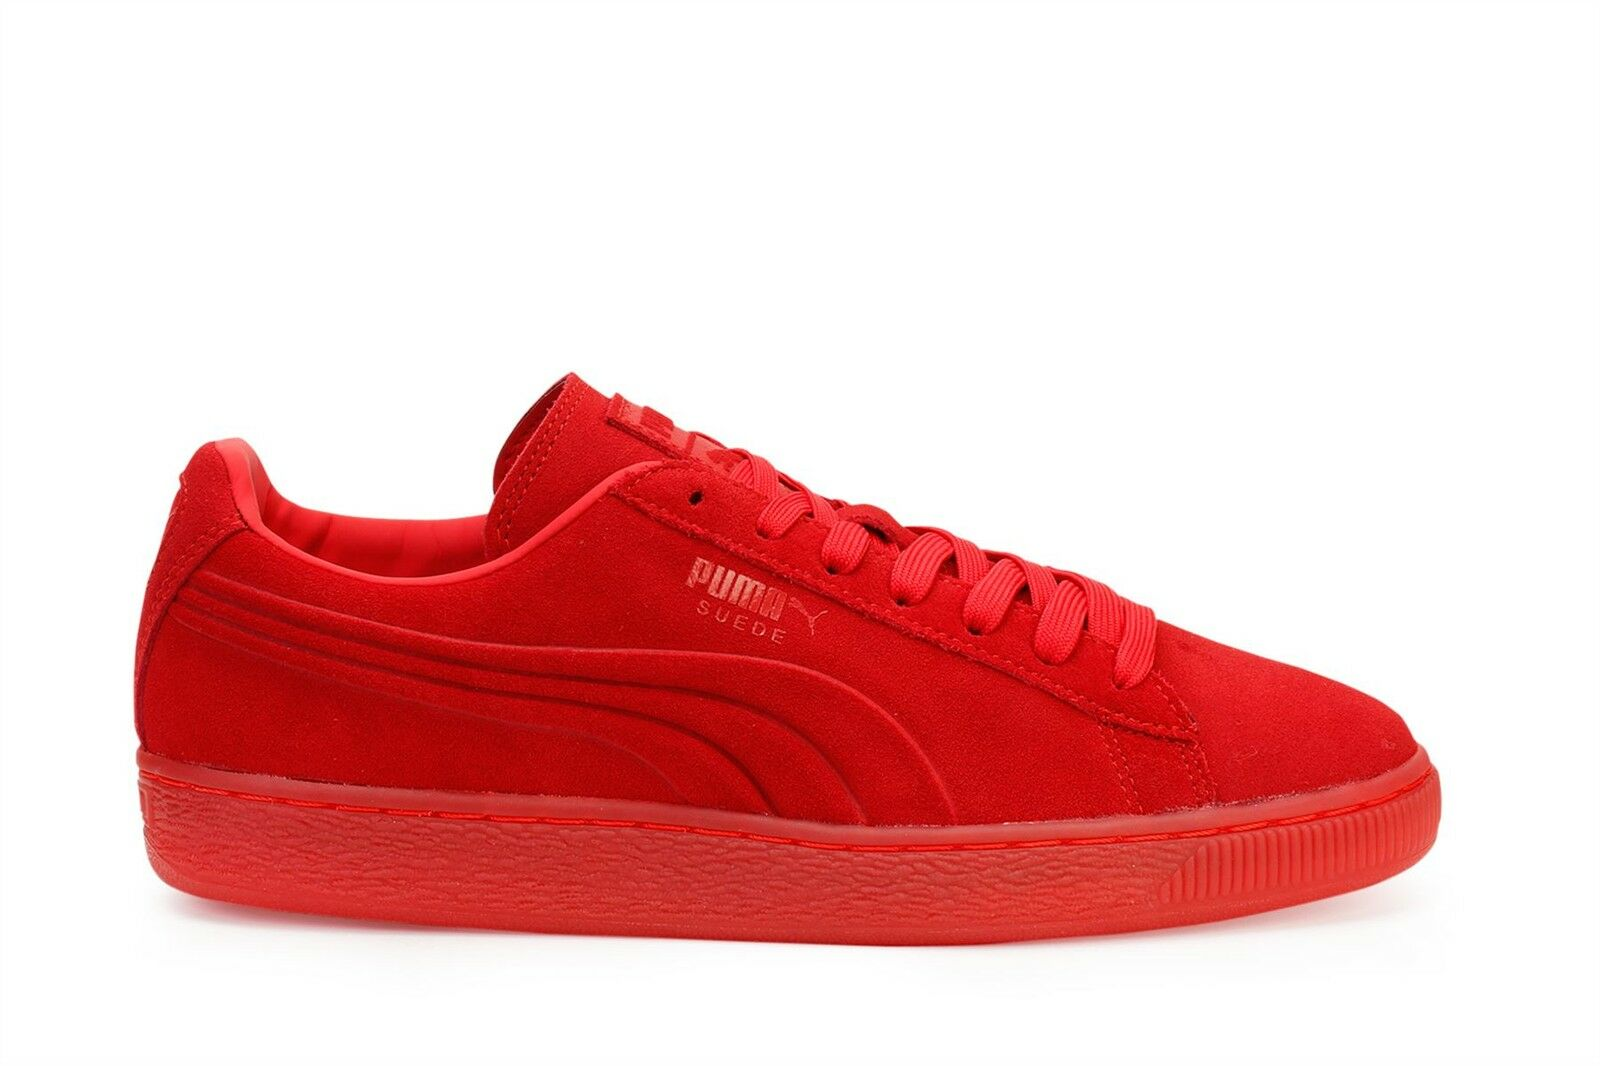 Puma Mens Casual Turnschuhe Suede Embossed Iced High Risk rot 361664-03